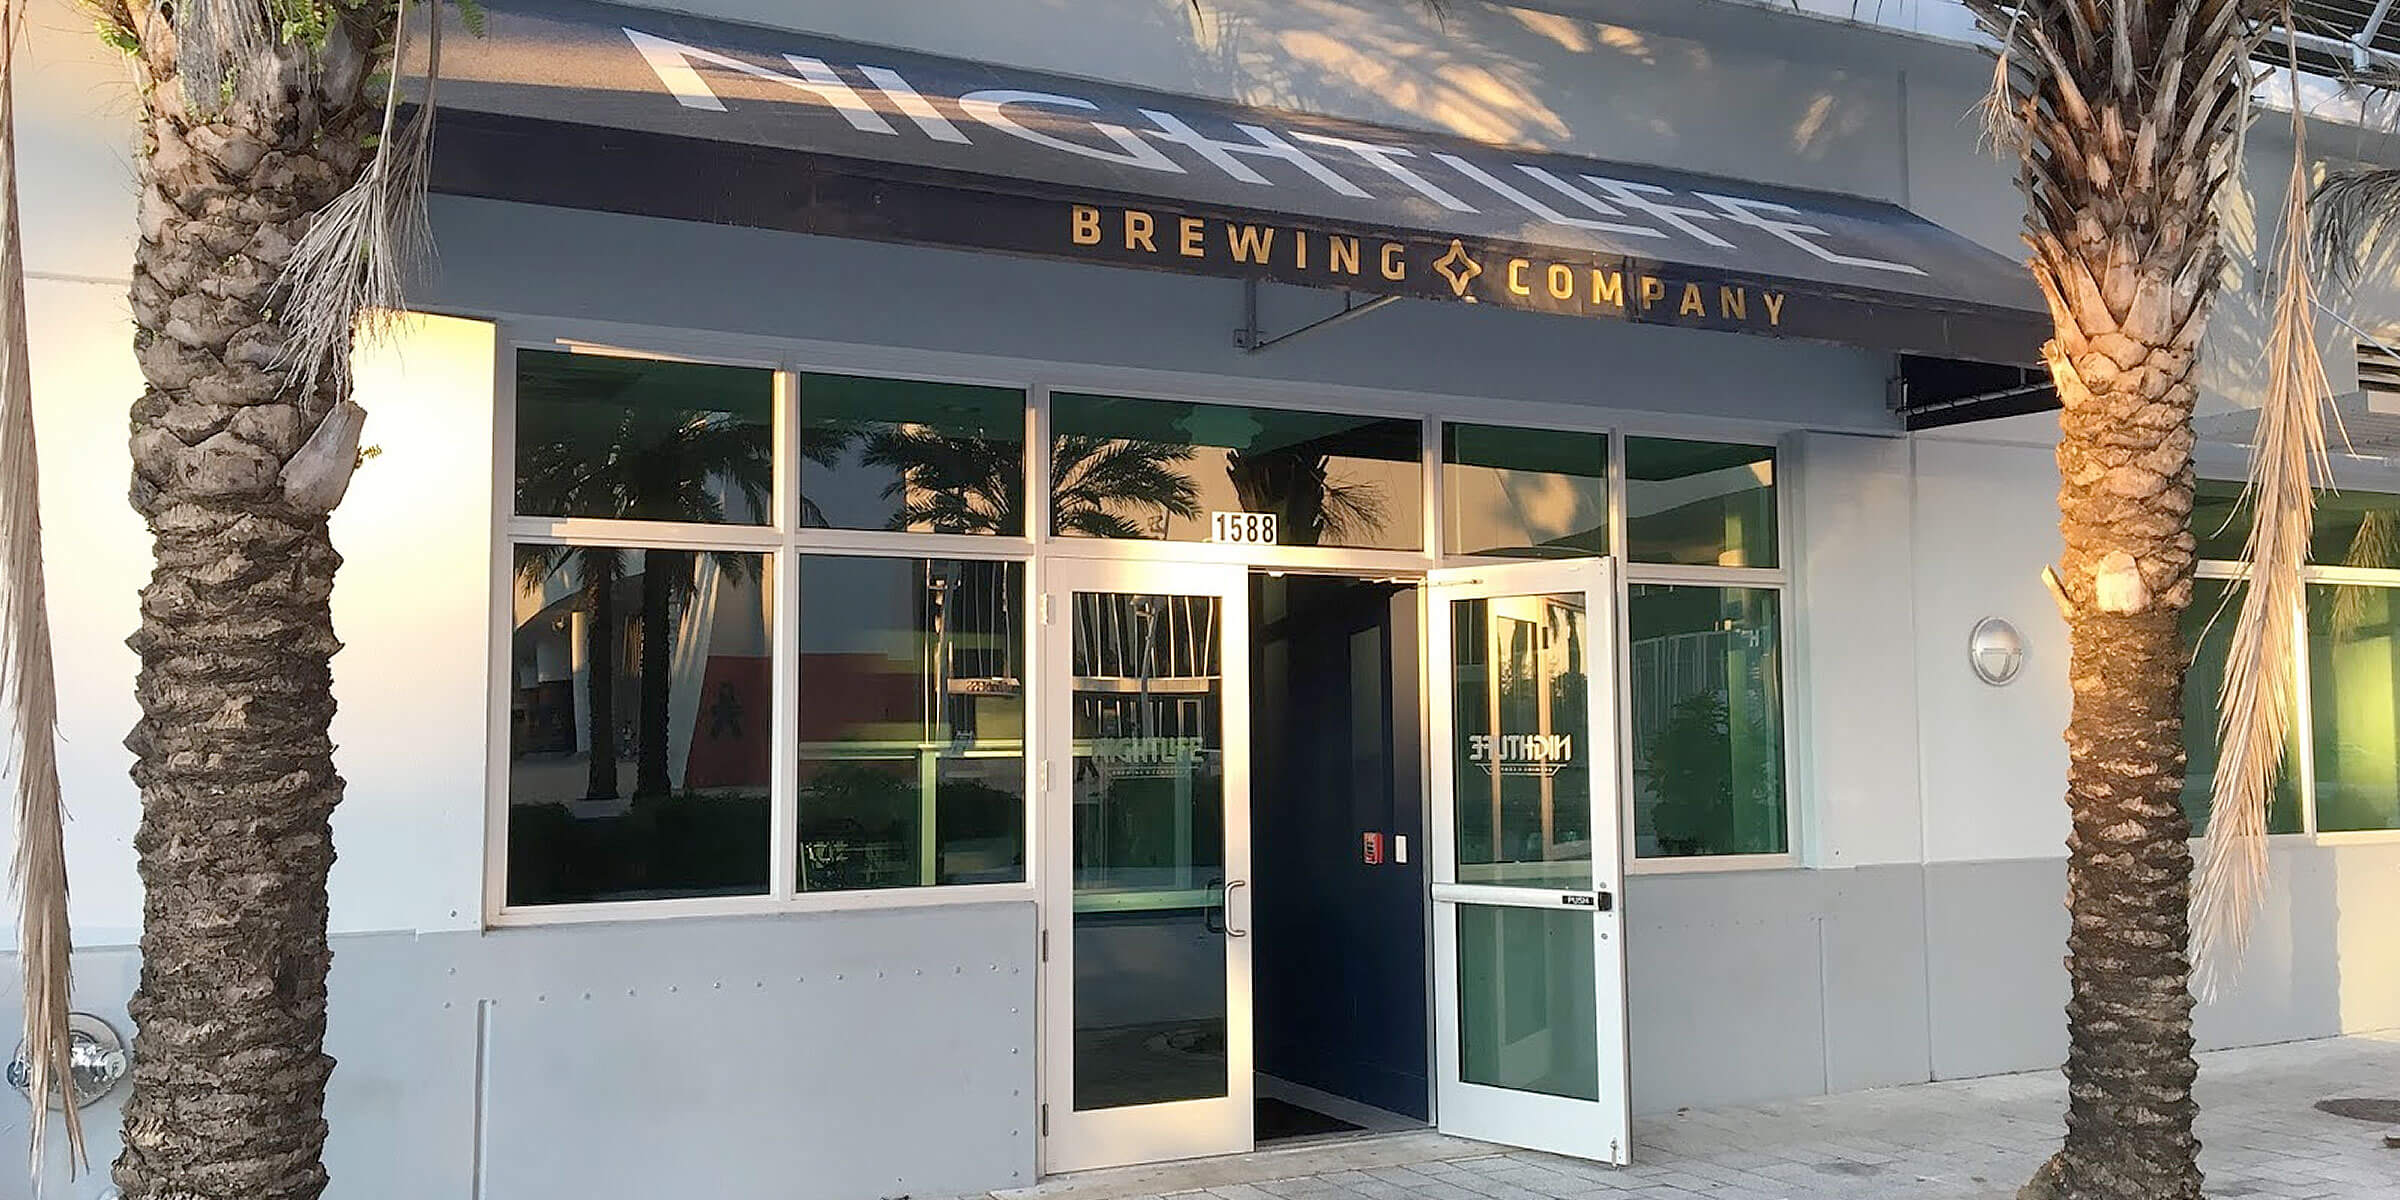 Outside the entrance to NightLife Brewing Co. in Miami, Florida